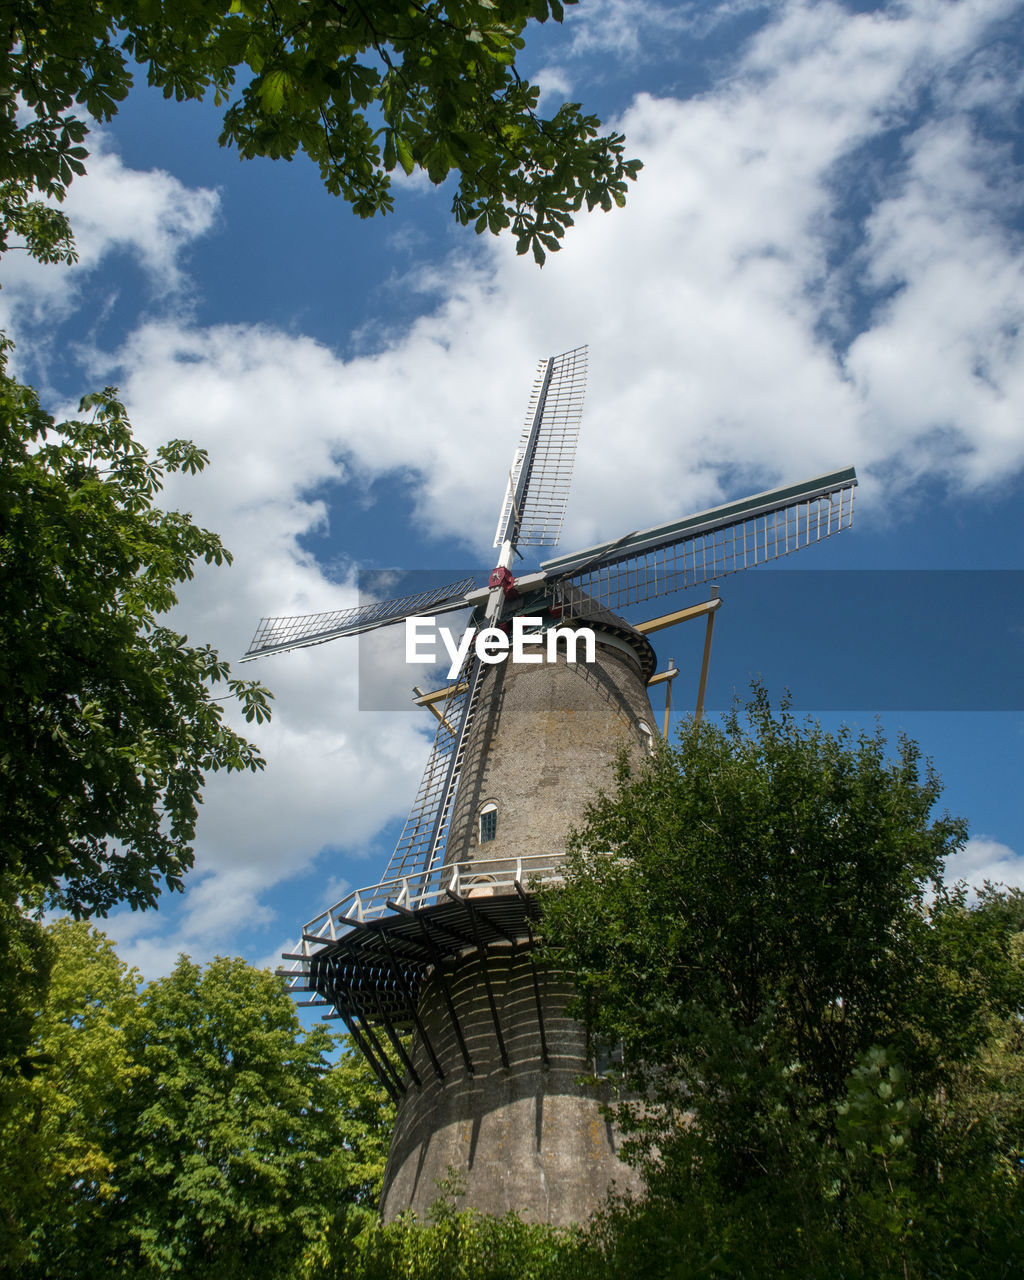 sky, renewable energy, tree, low angle view, fuel and power generation, cloud - sky, environmental conservation, alternative energy, turbine, wind turbine, nature, wind power, plant, built structure, architecture, traditional windmill, environment, day, technology, no people, outdoors